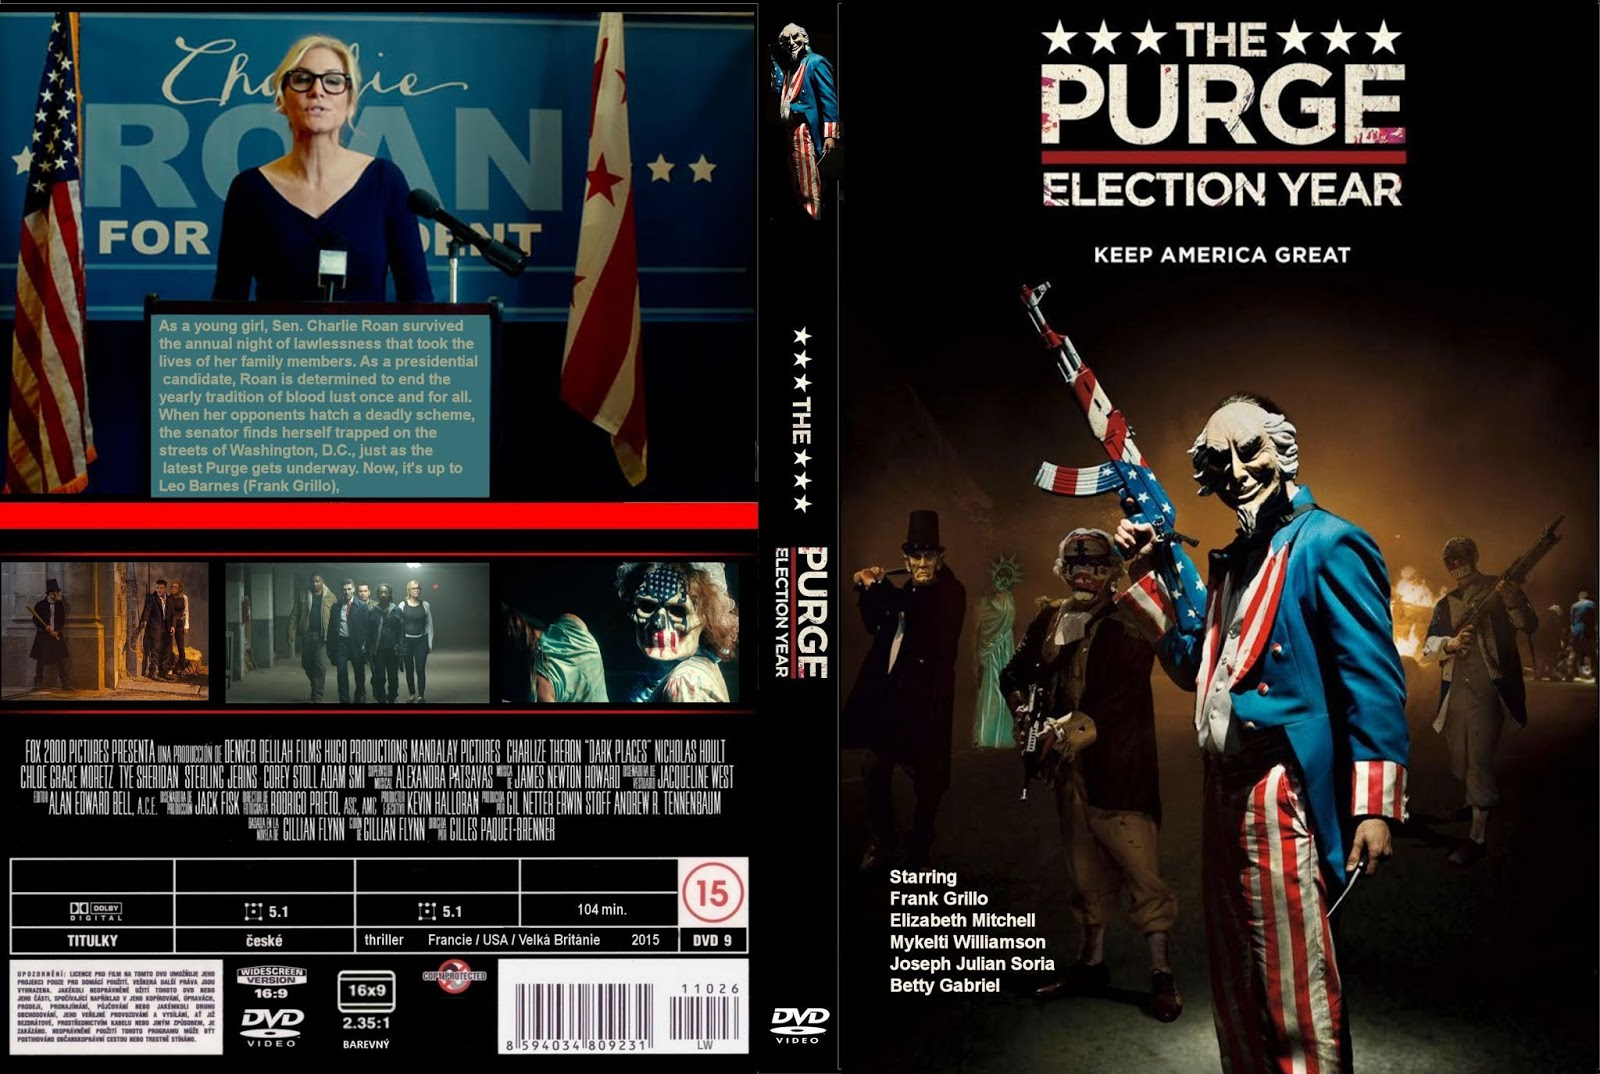 the purge: election year (2016) full movie hindi dub download free